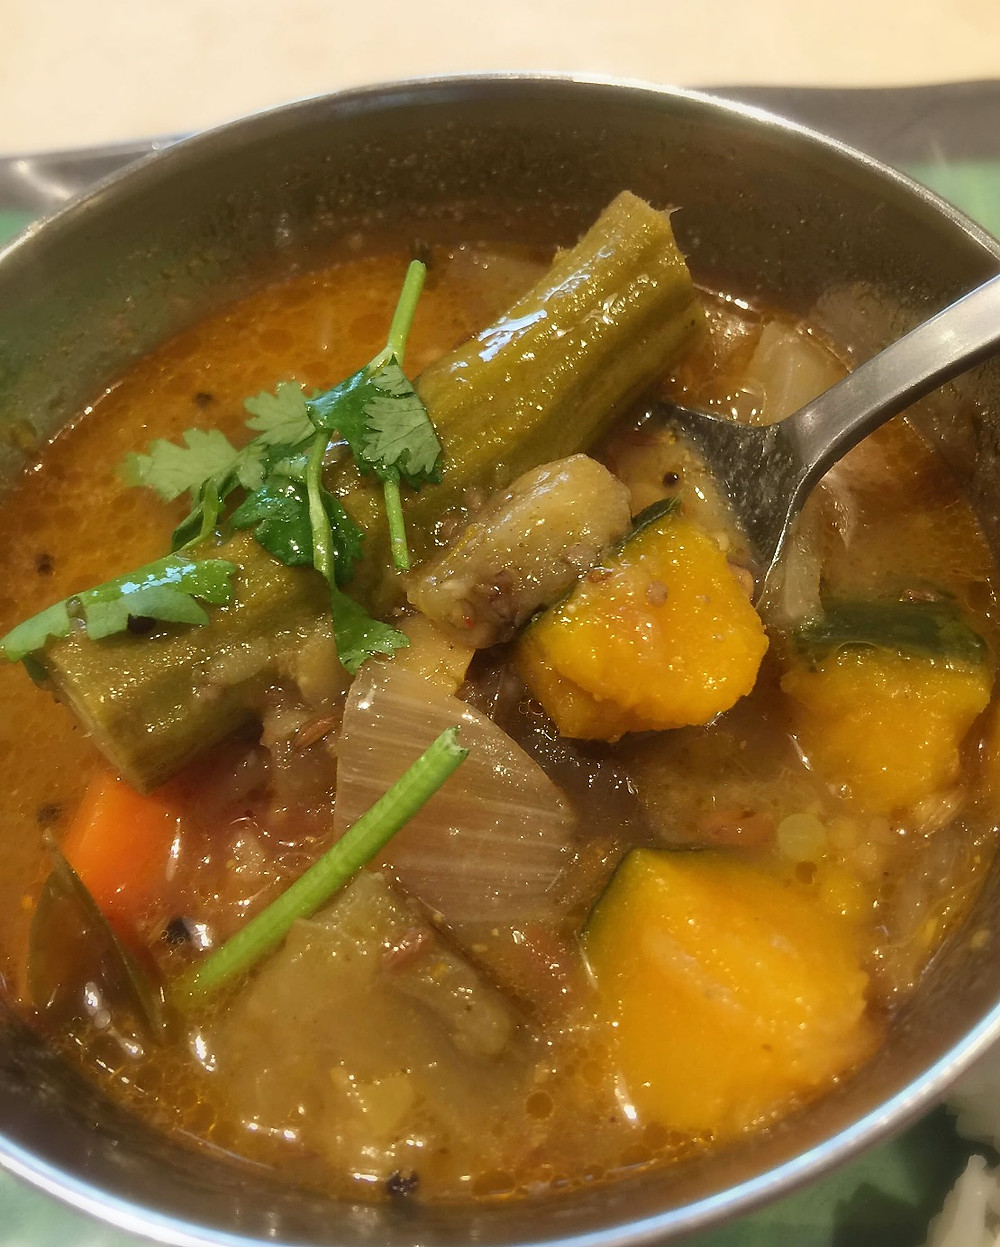 Fennel-scented sambar with drumstick and pumpkin, eggplant, carrots